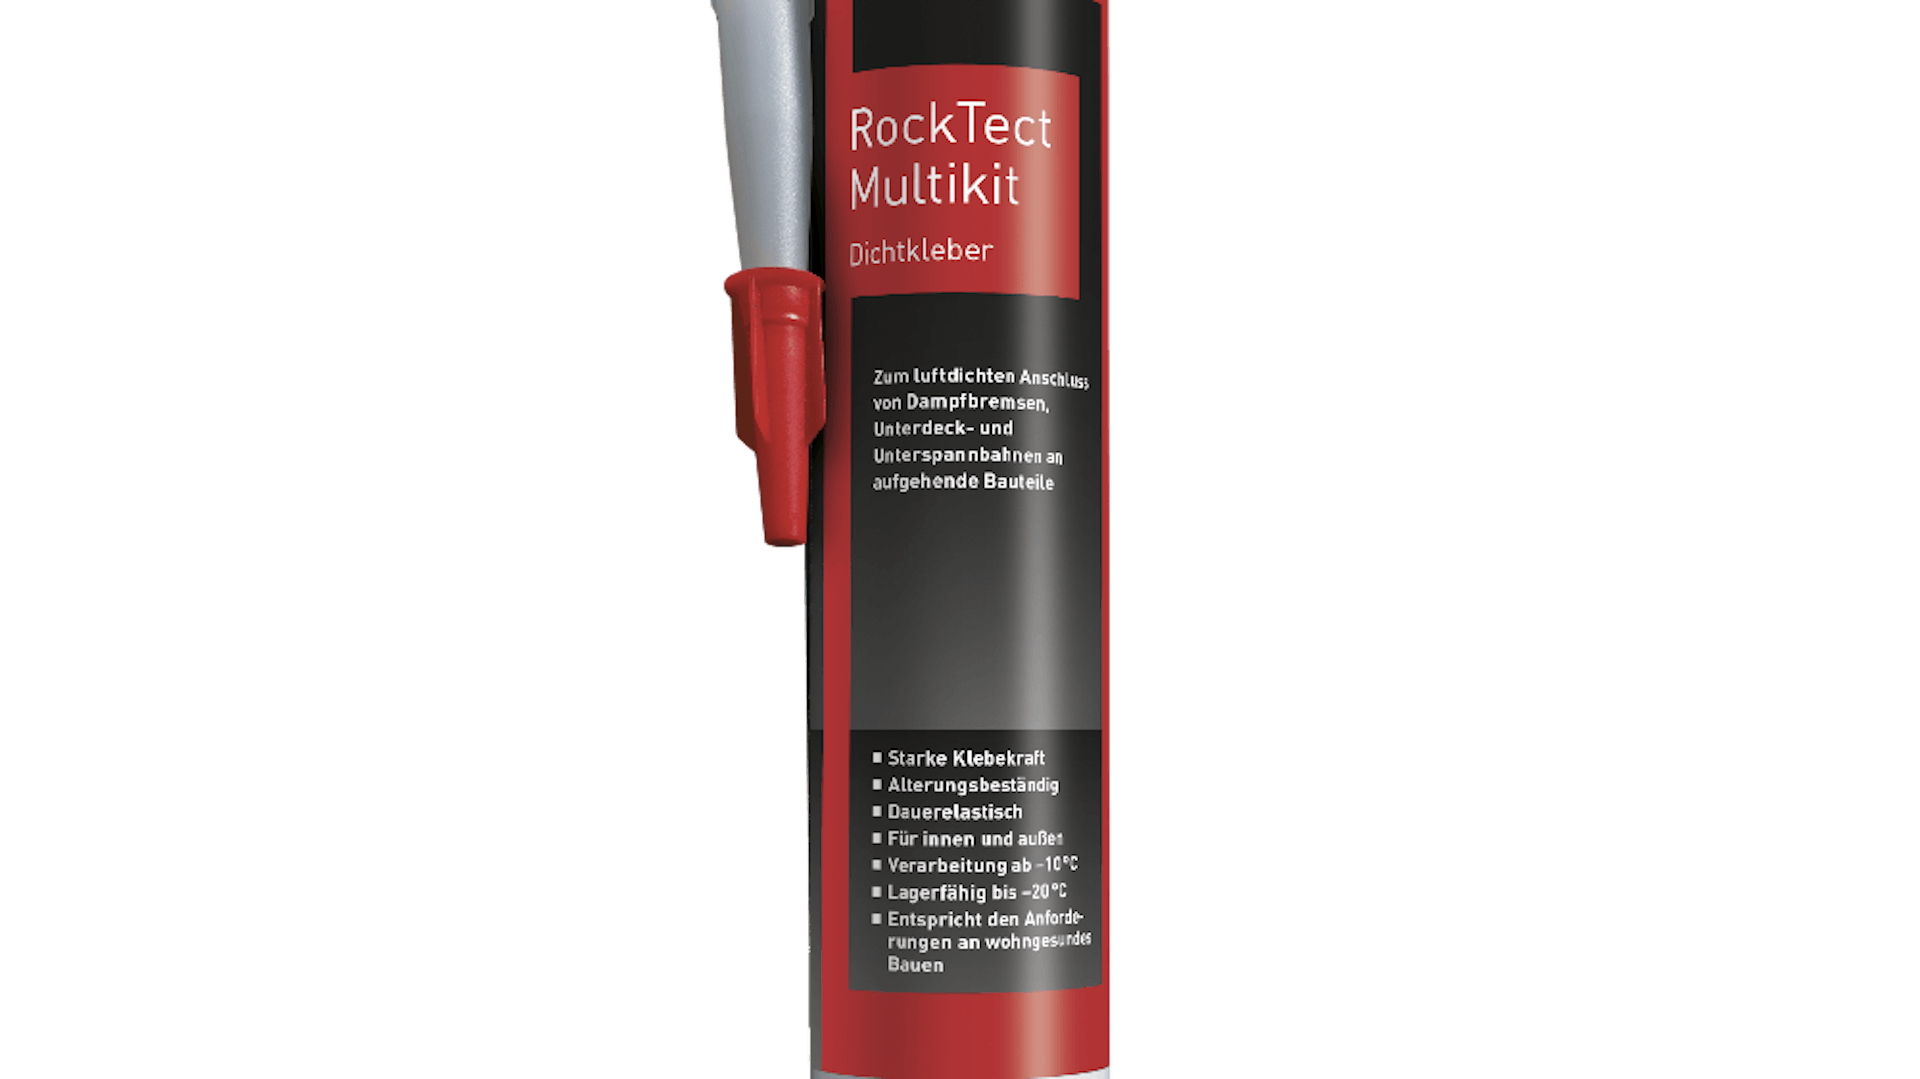 ROCKTECT Multikit, piched roof insulation, internal insulation, glue